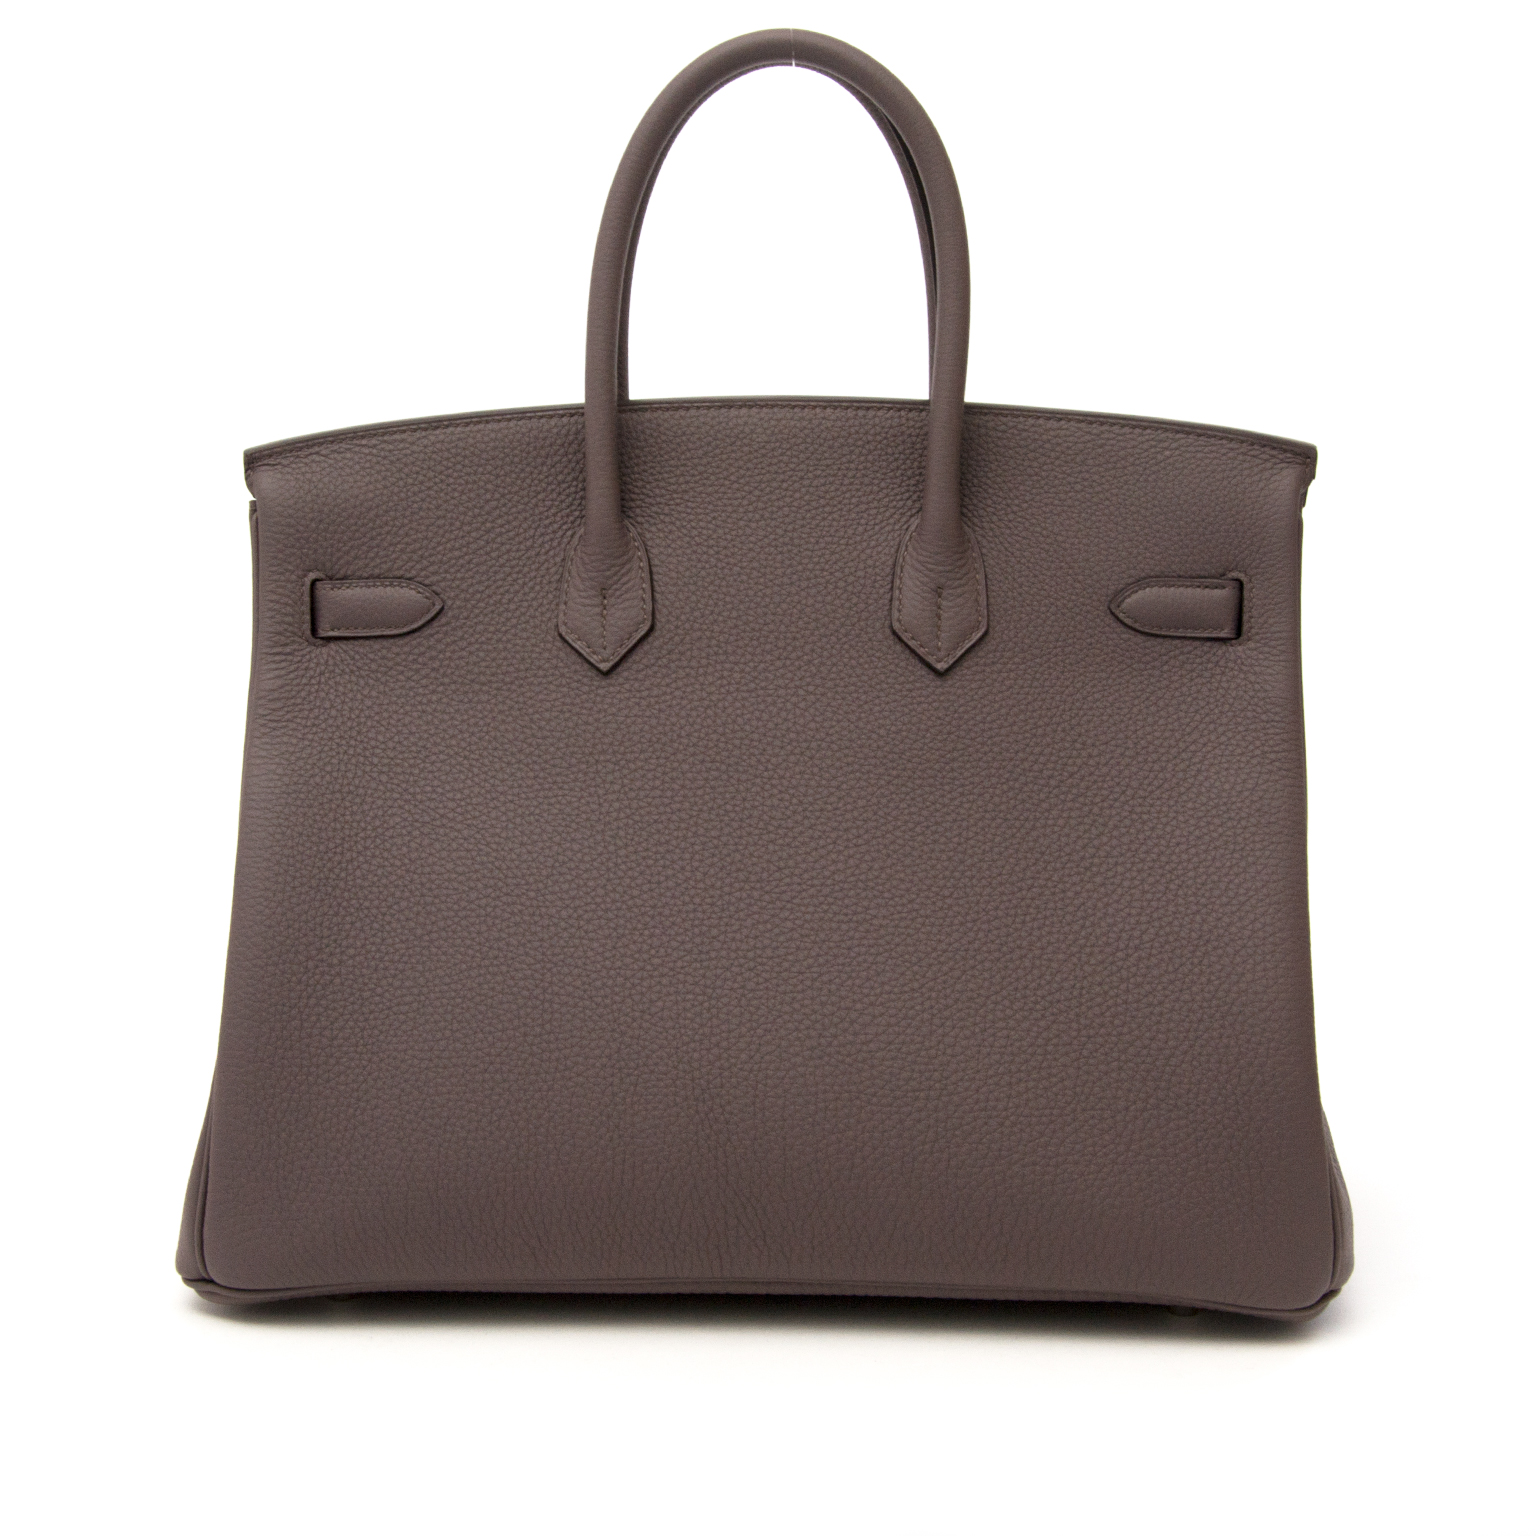 shop safe online at the best price brand new Brand New Hermès Birkin Togo 35 PHW Etain